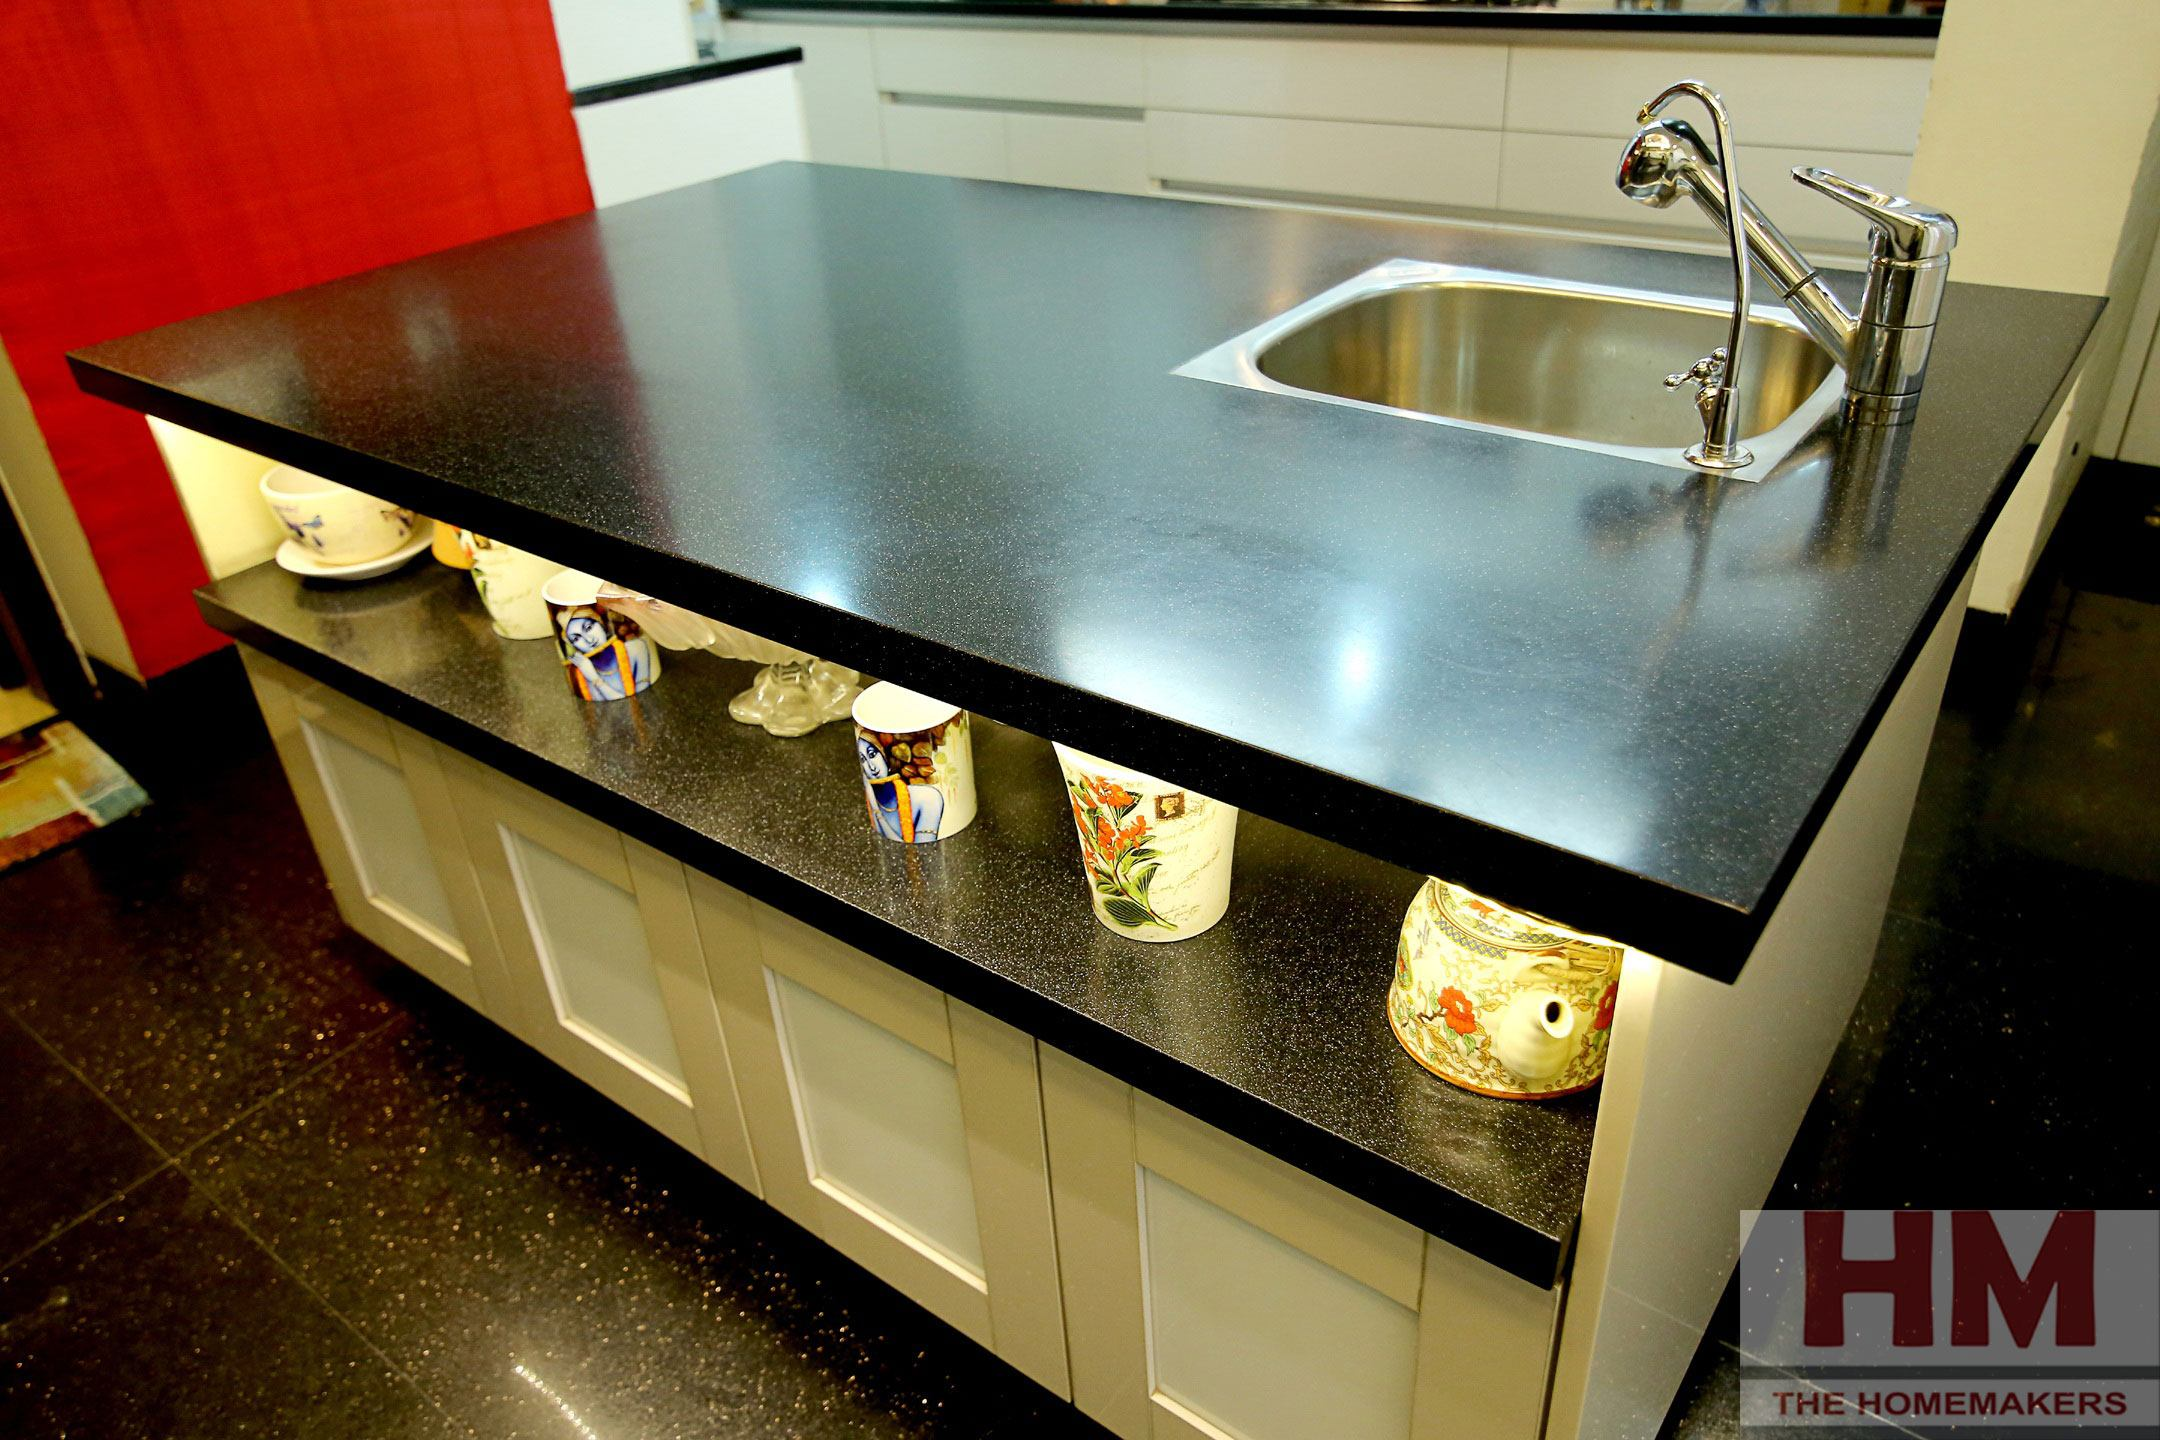 Manufacturers & Dealers of Modular Kitchen in Delhi NCR, Gurgaon, Noida